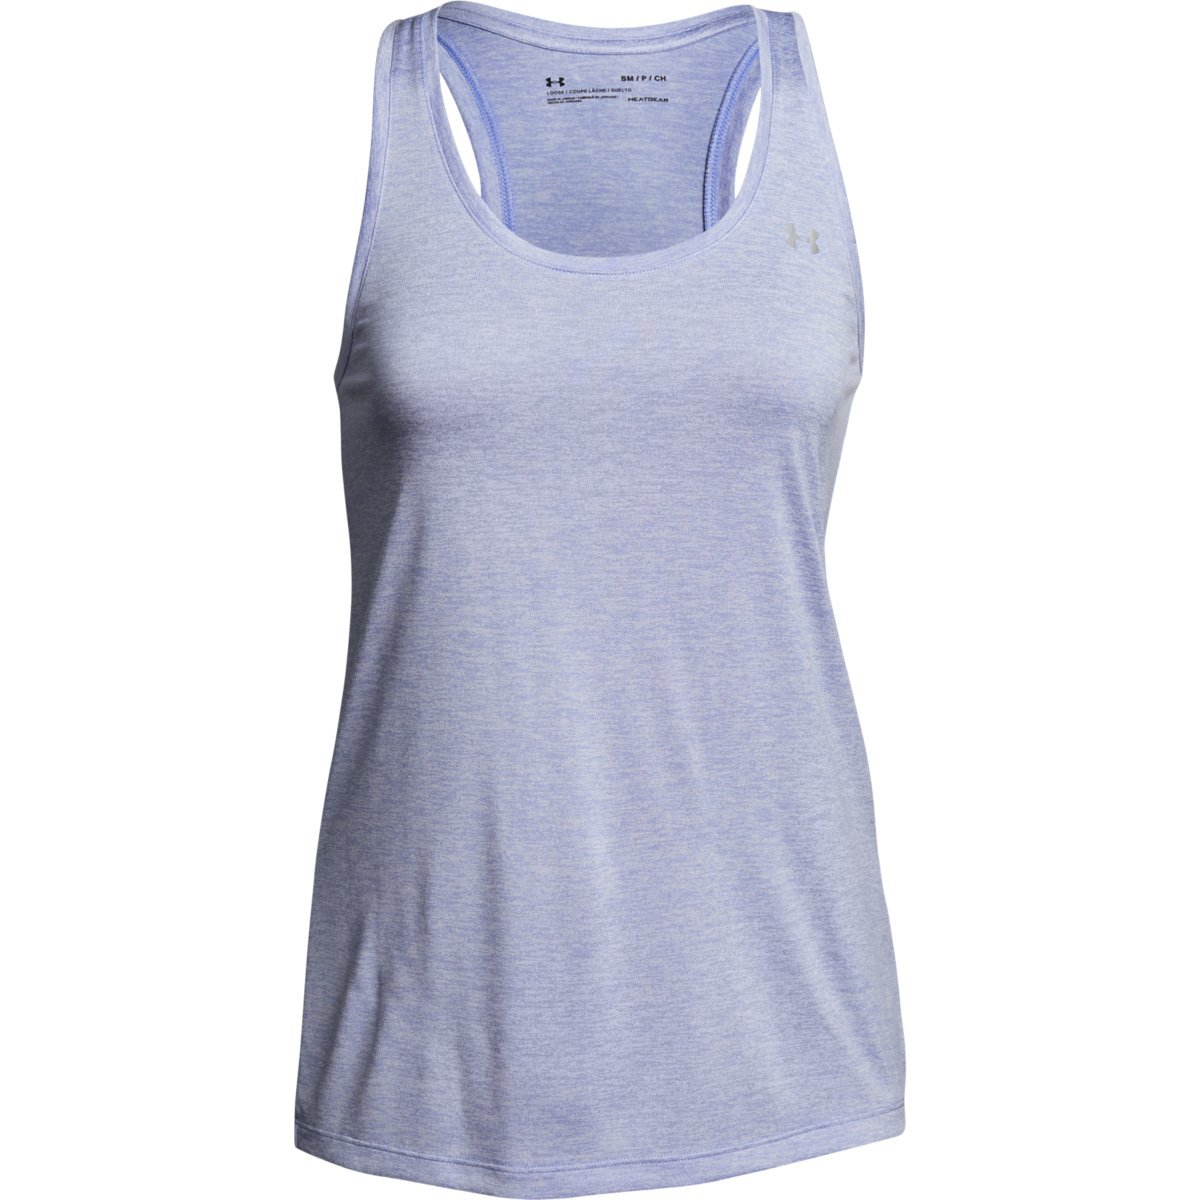 Under Armour Women's Twist Tech Tank - Blue, L